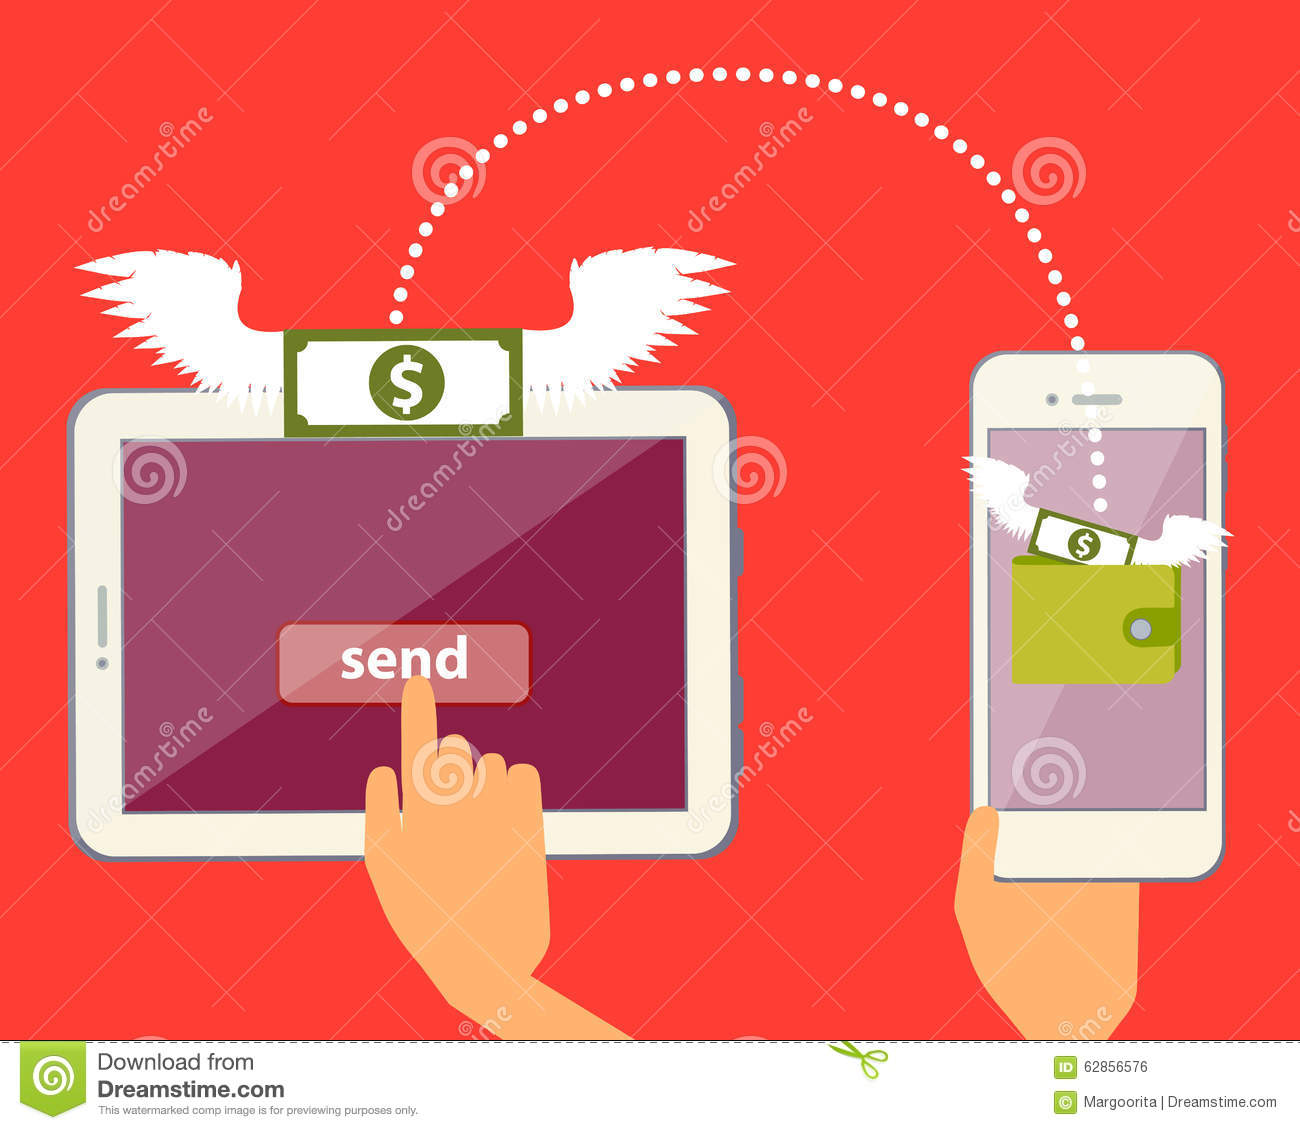 How to send money online, on mobile or in person